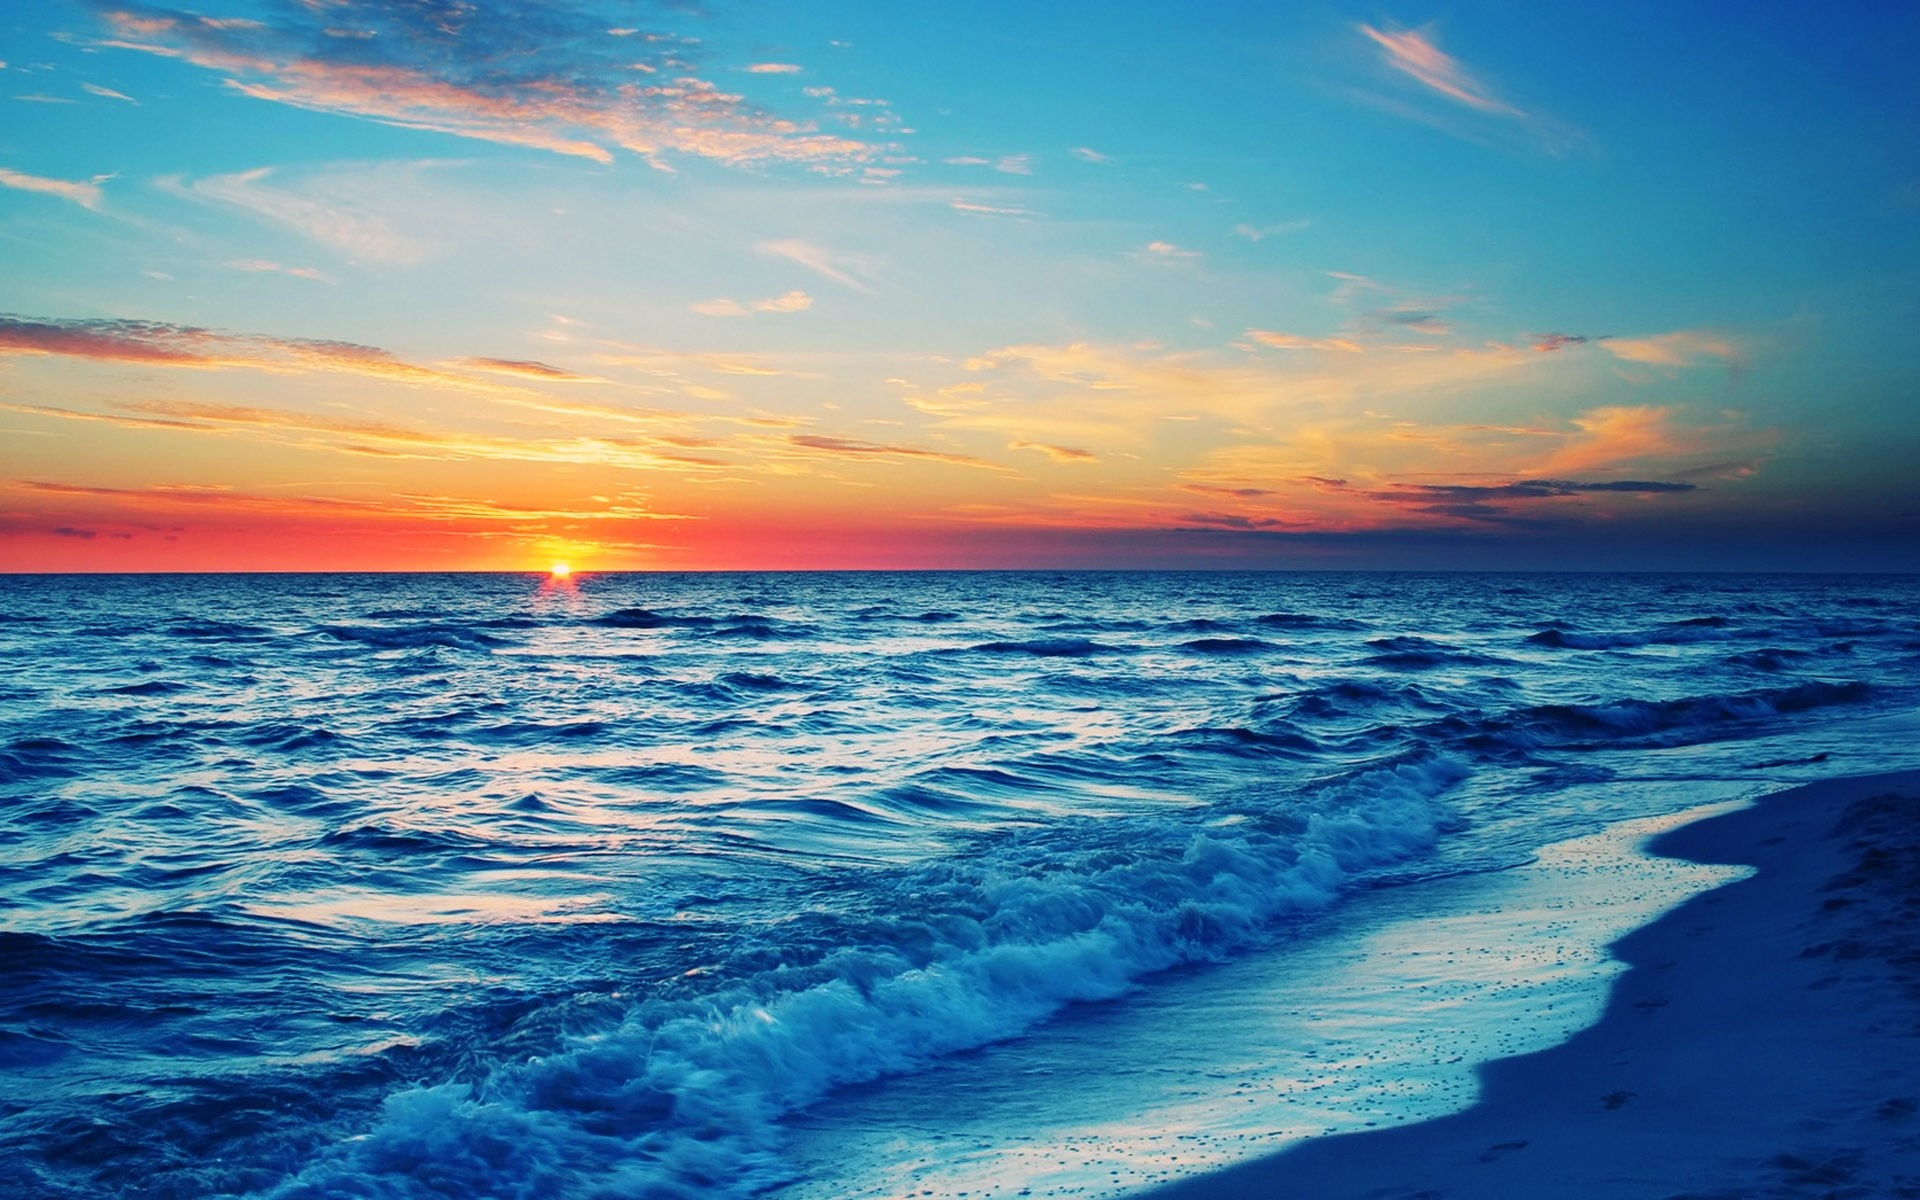 1920x1080 Top Collection of Beach Sunset Wallpapers: Beach Sunset Background 1920x1080 px for PC & Mac, Tablet, .